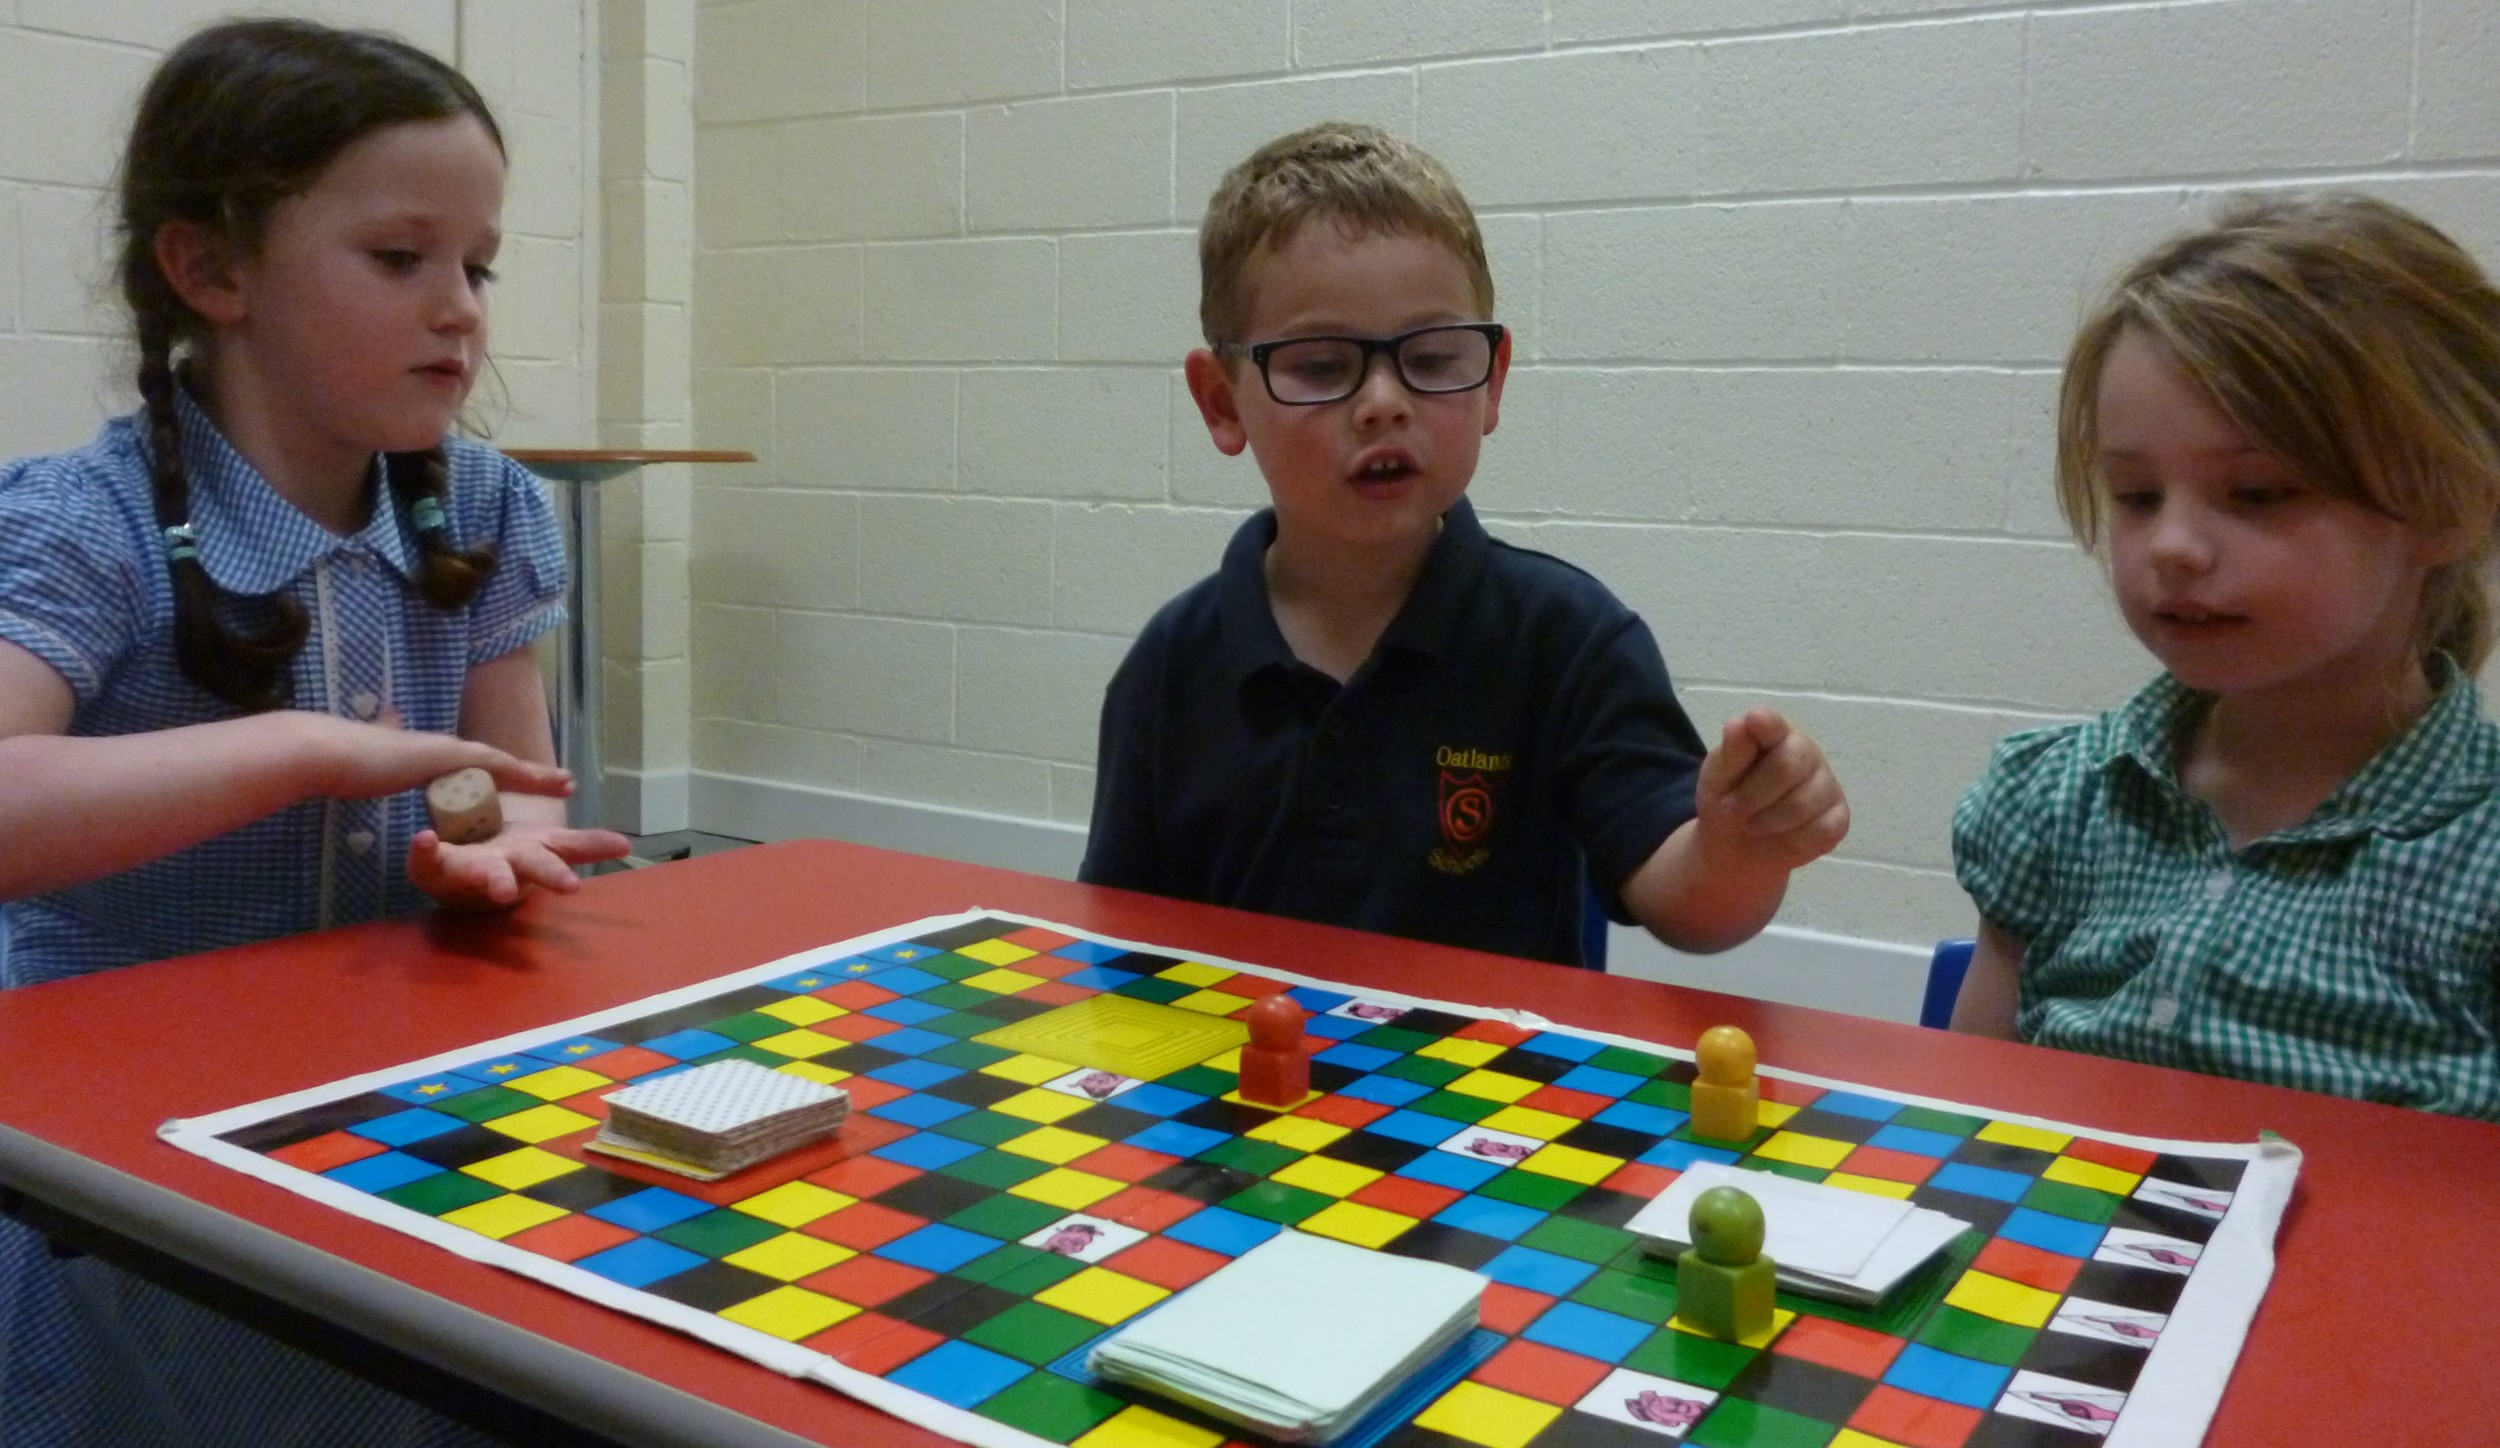 Kidzplay, Harrogate. Another revision game. Summer 2015